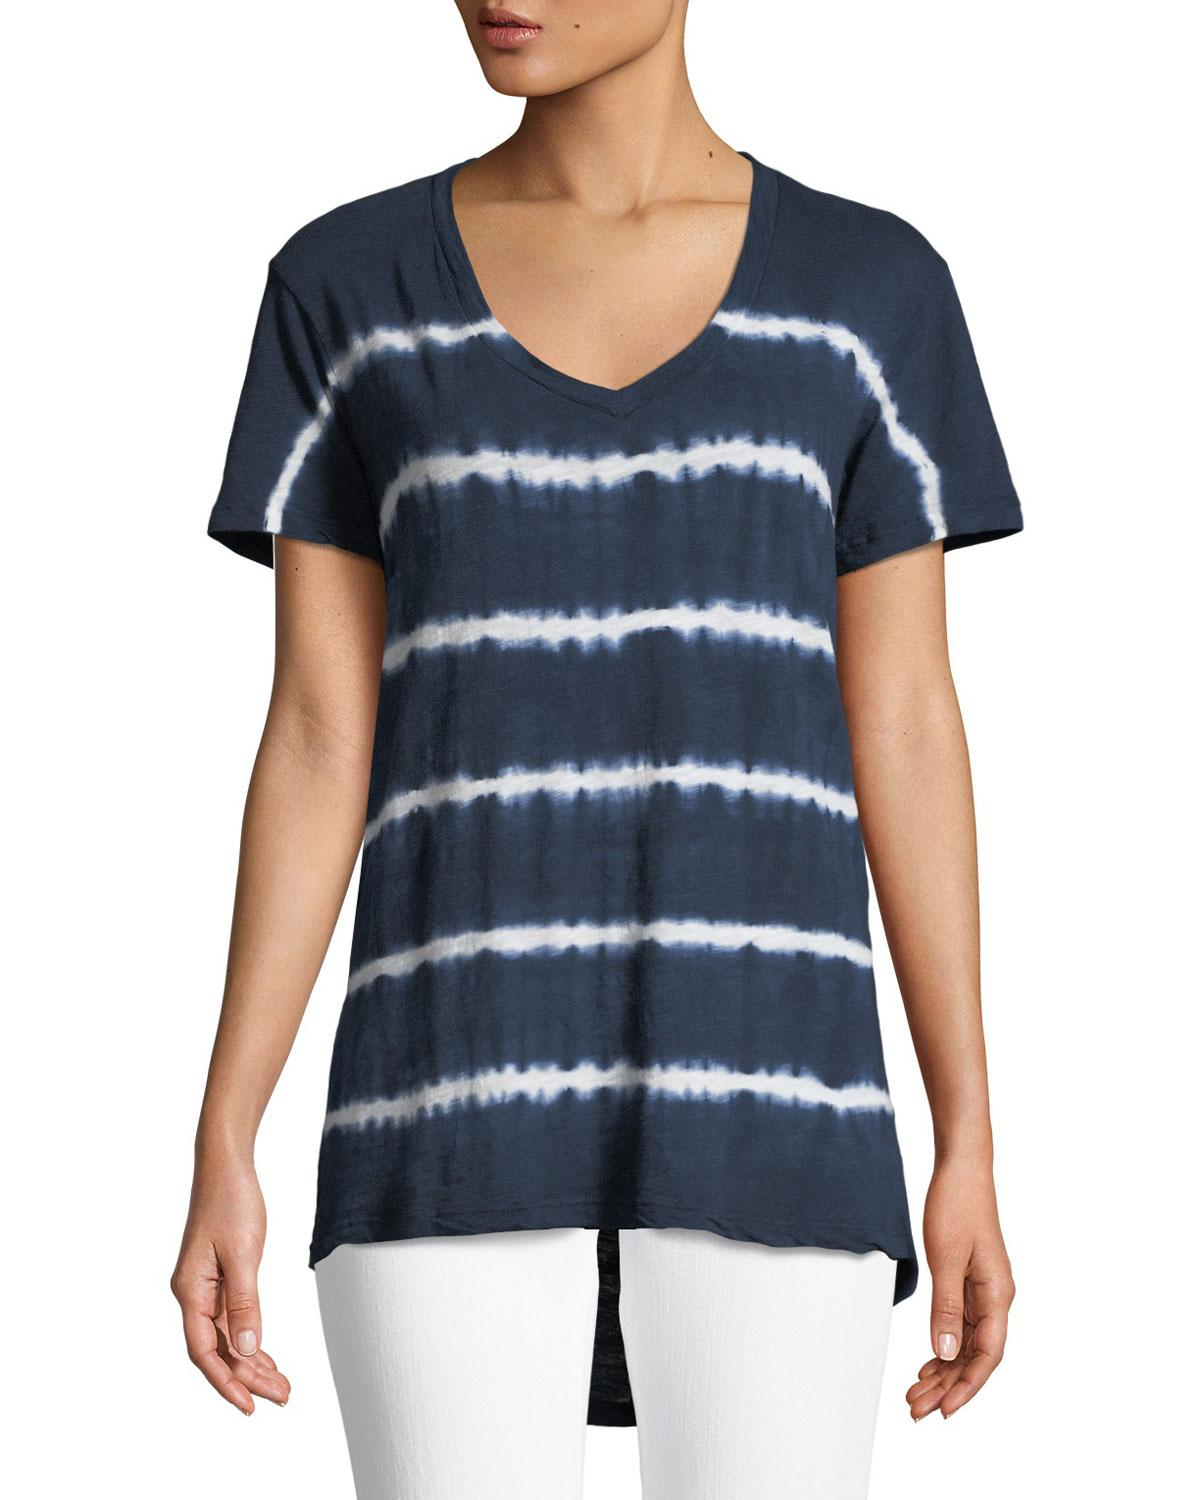 Allen Allen. Women's Blue Tie-dye Striped High-low Tee